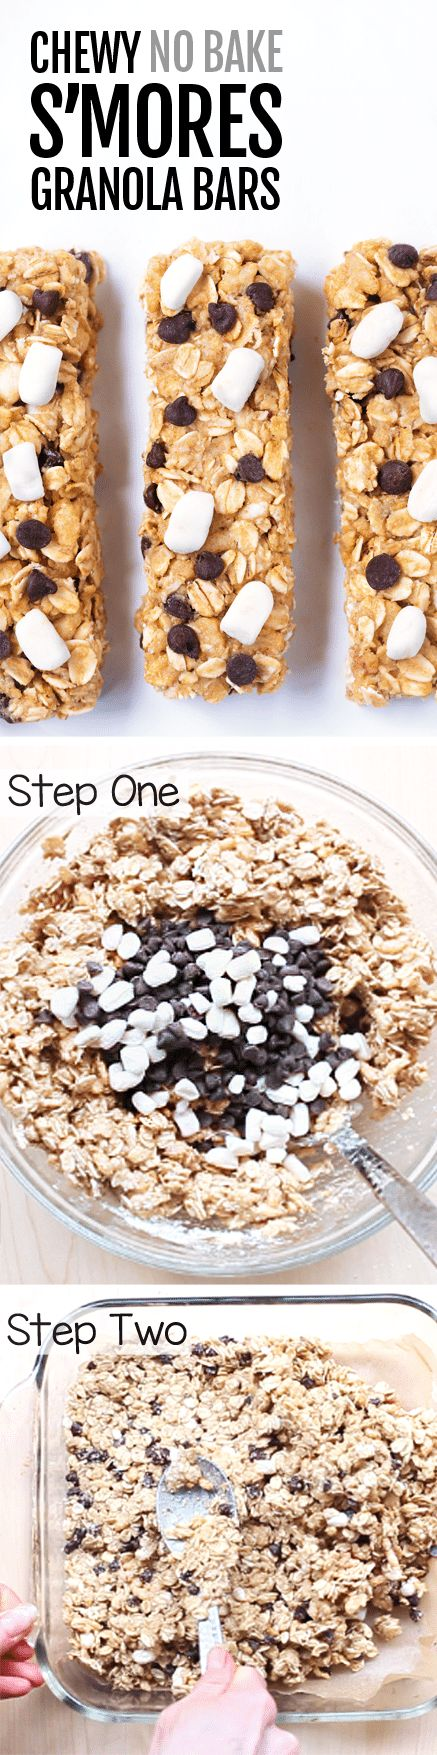 Homemade CHEWY S'mores Granola Bars!